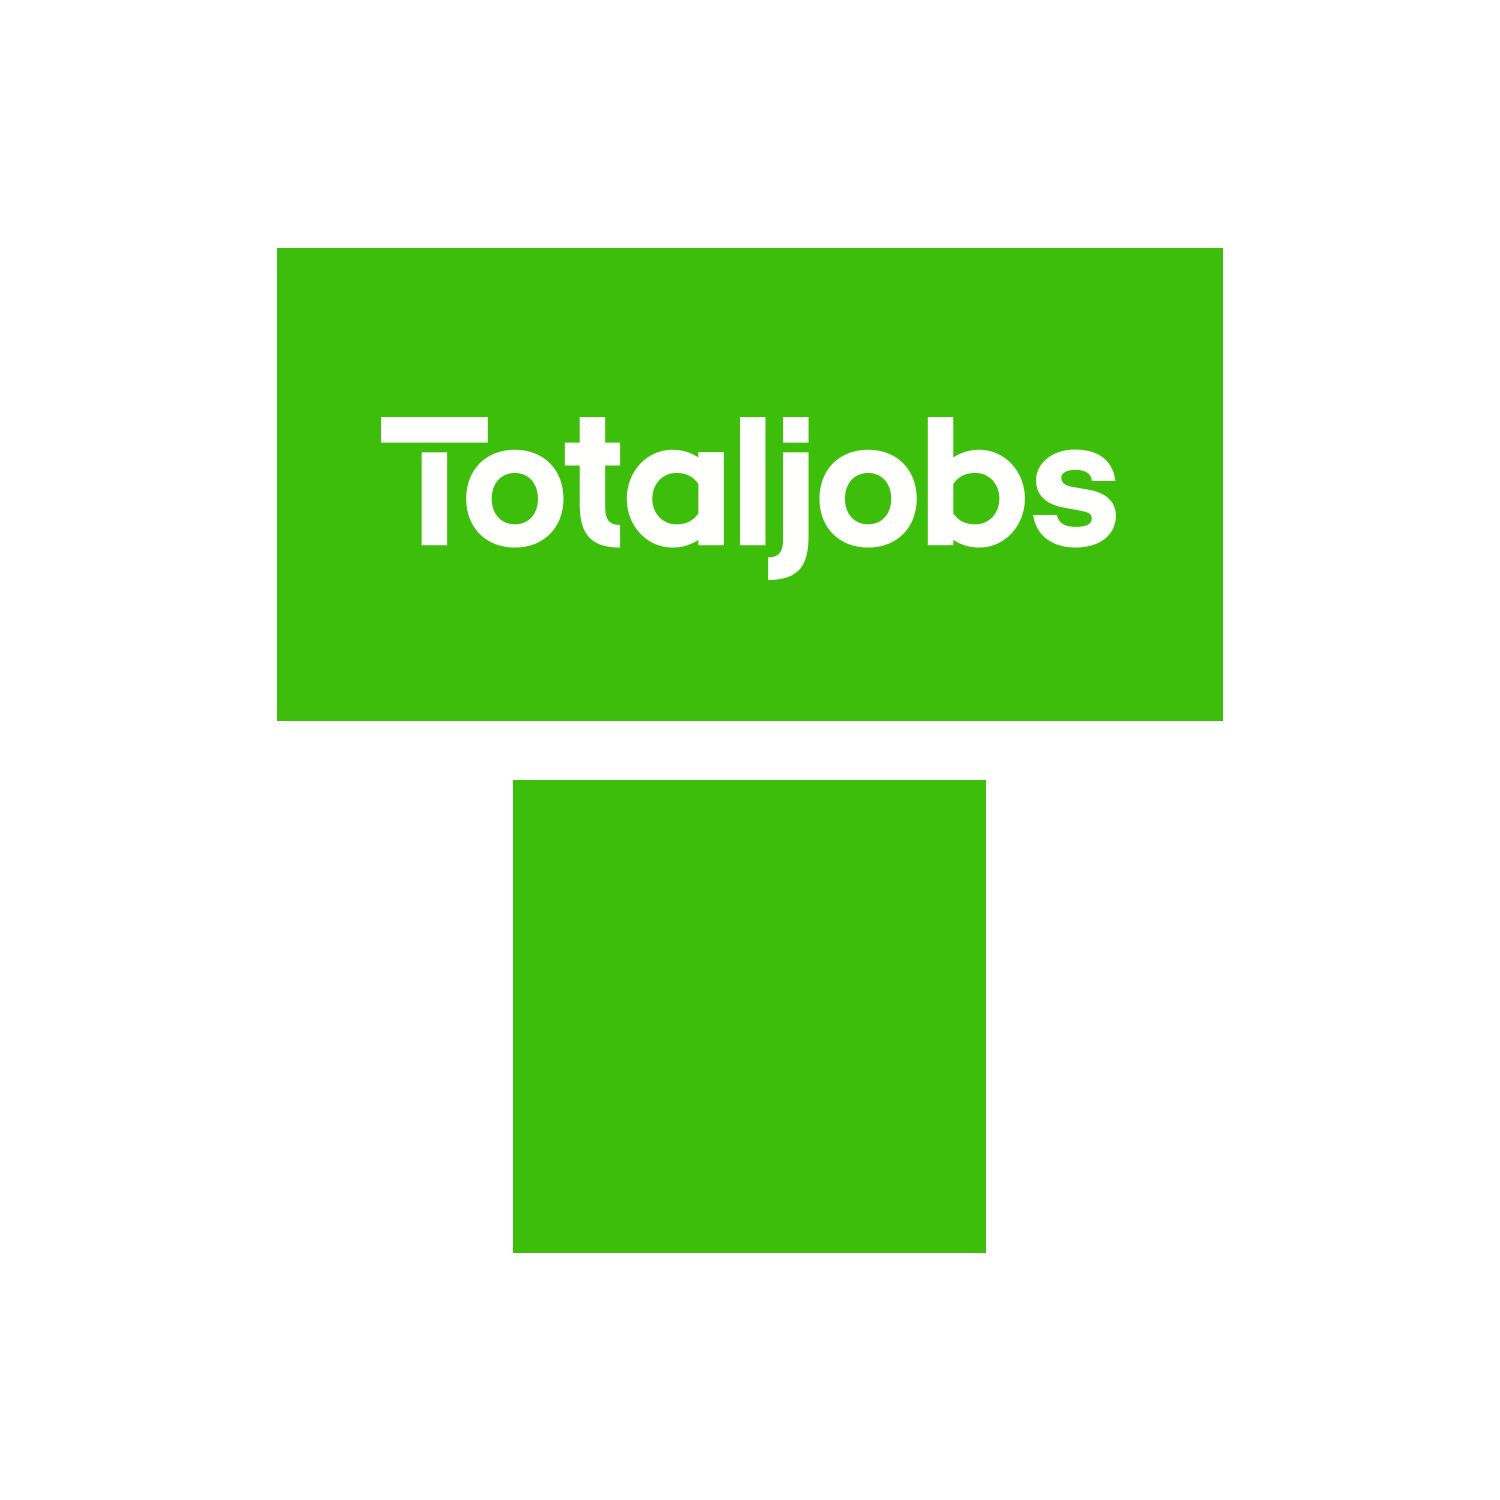 Sales Representative in Ipswich, Suffolk | Avon - totaljobs